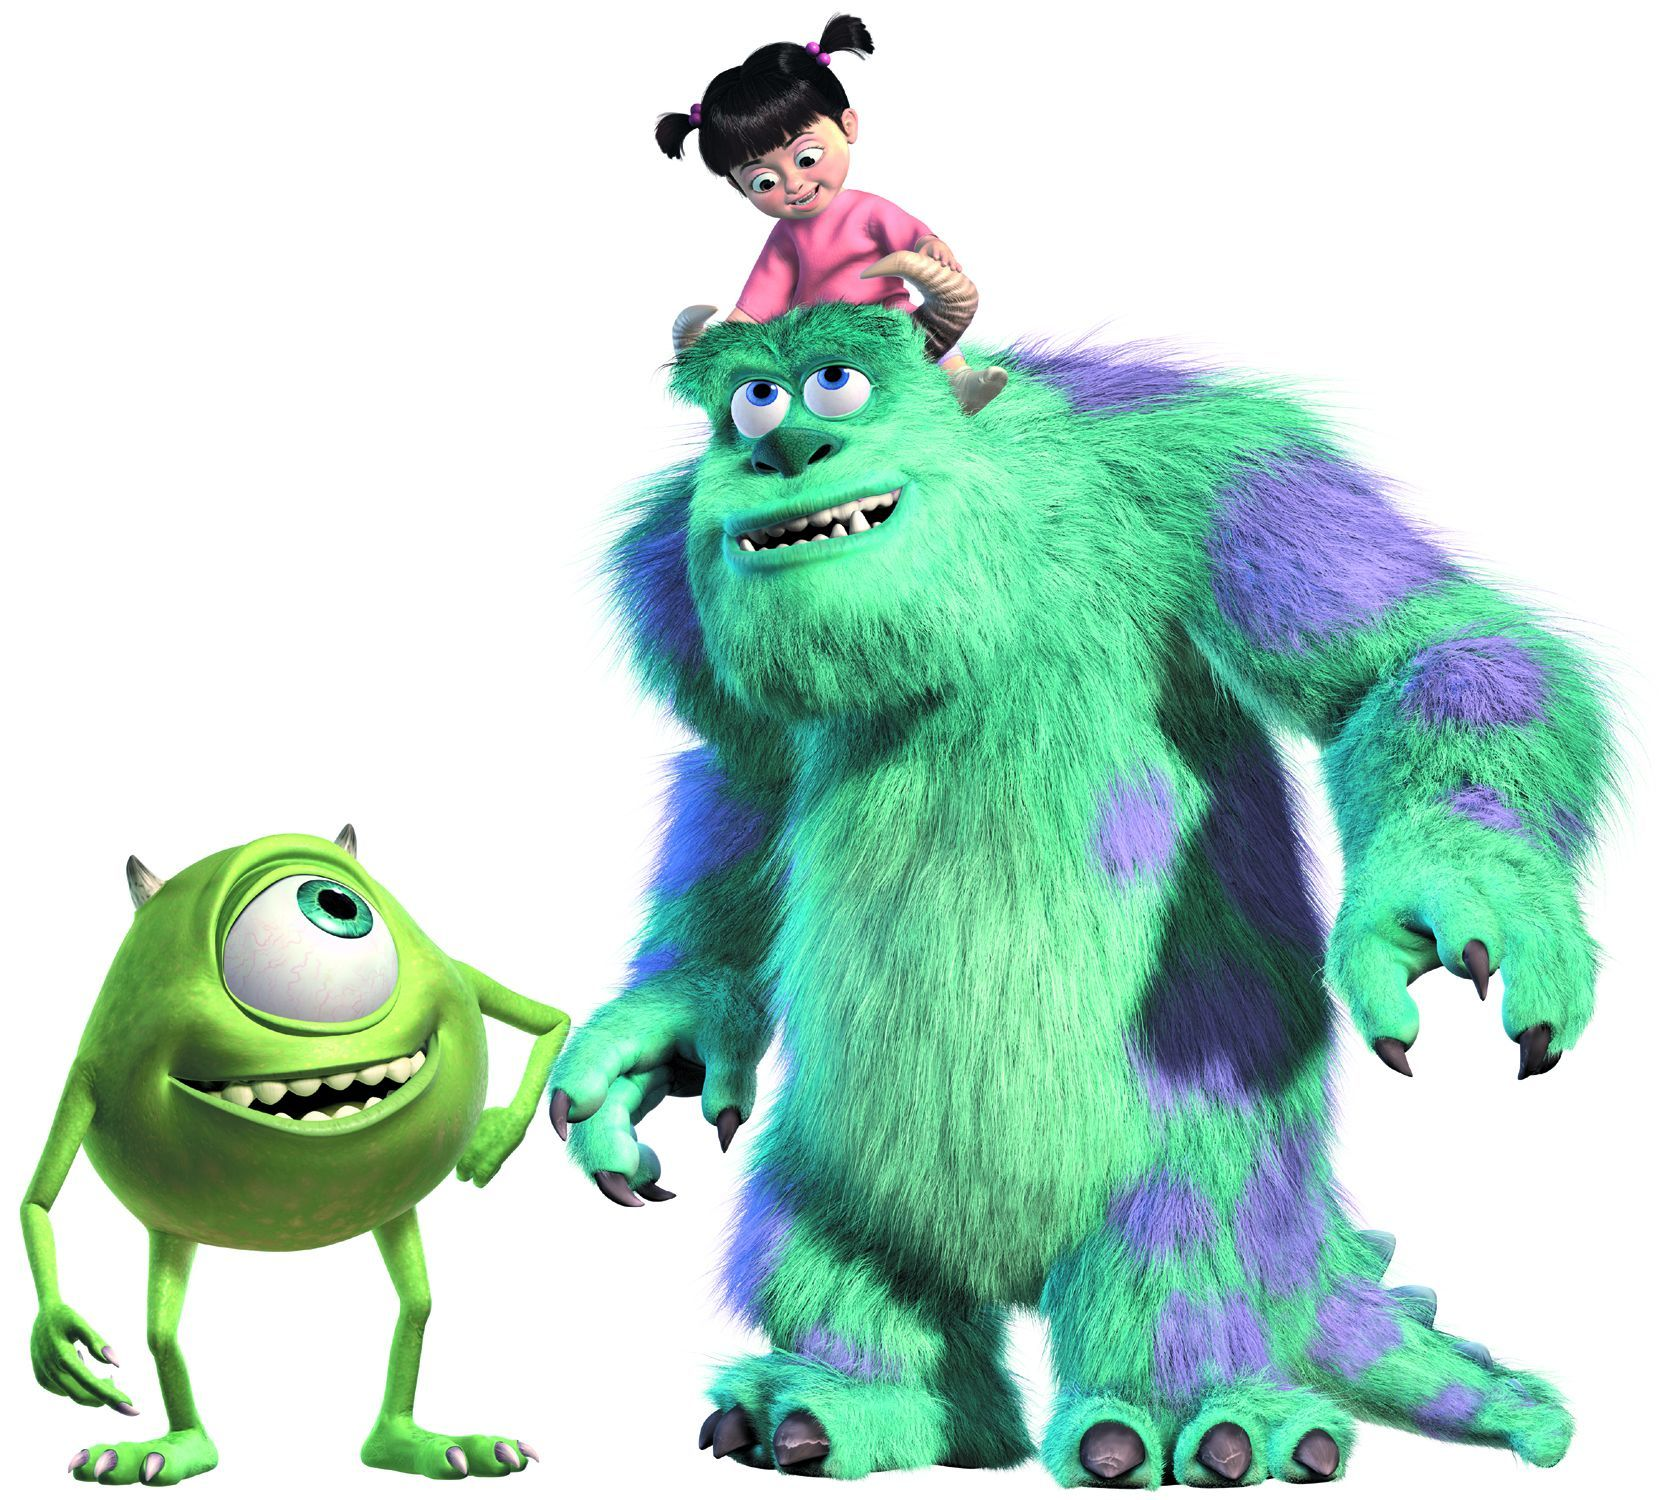 Uncategorized Sulley Mike And Boo image mike sully and boo jpg pixar wiki fandom powered by wikia